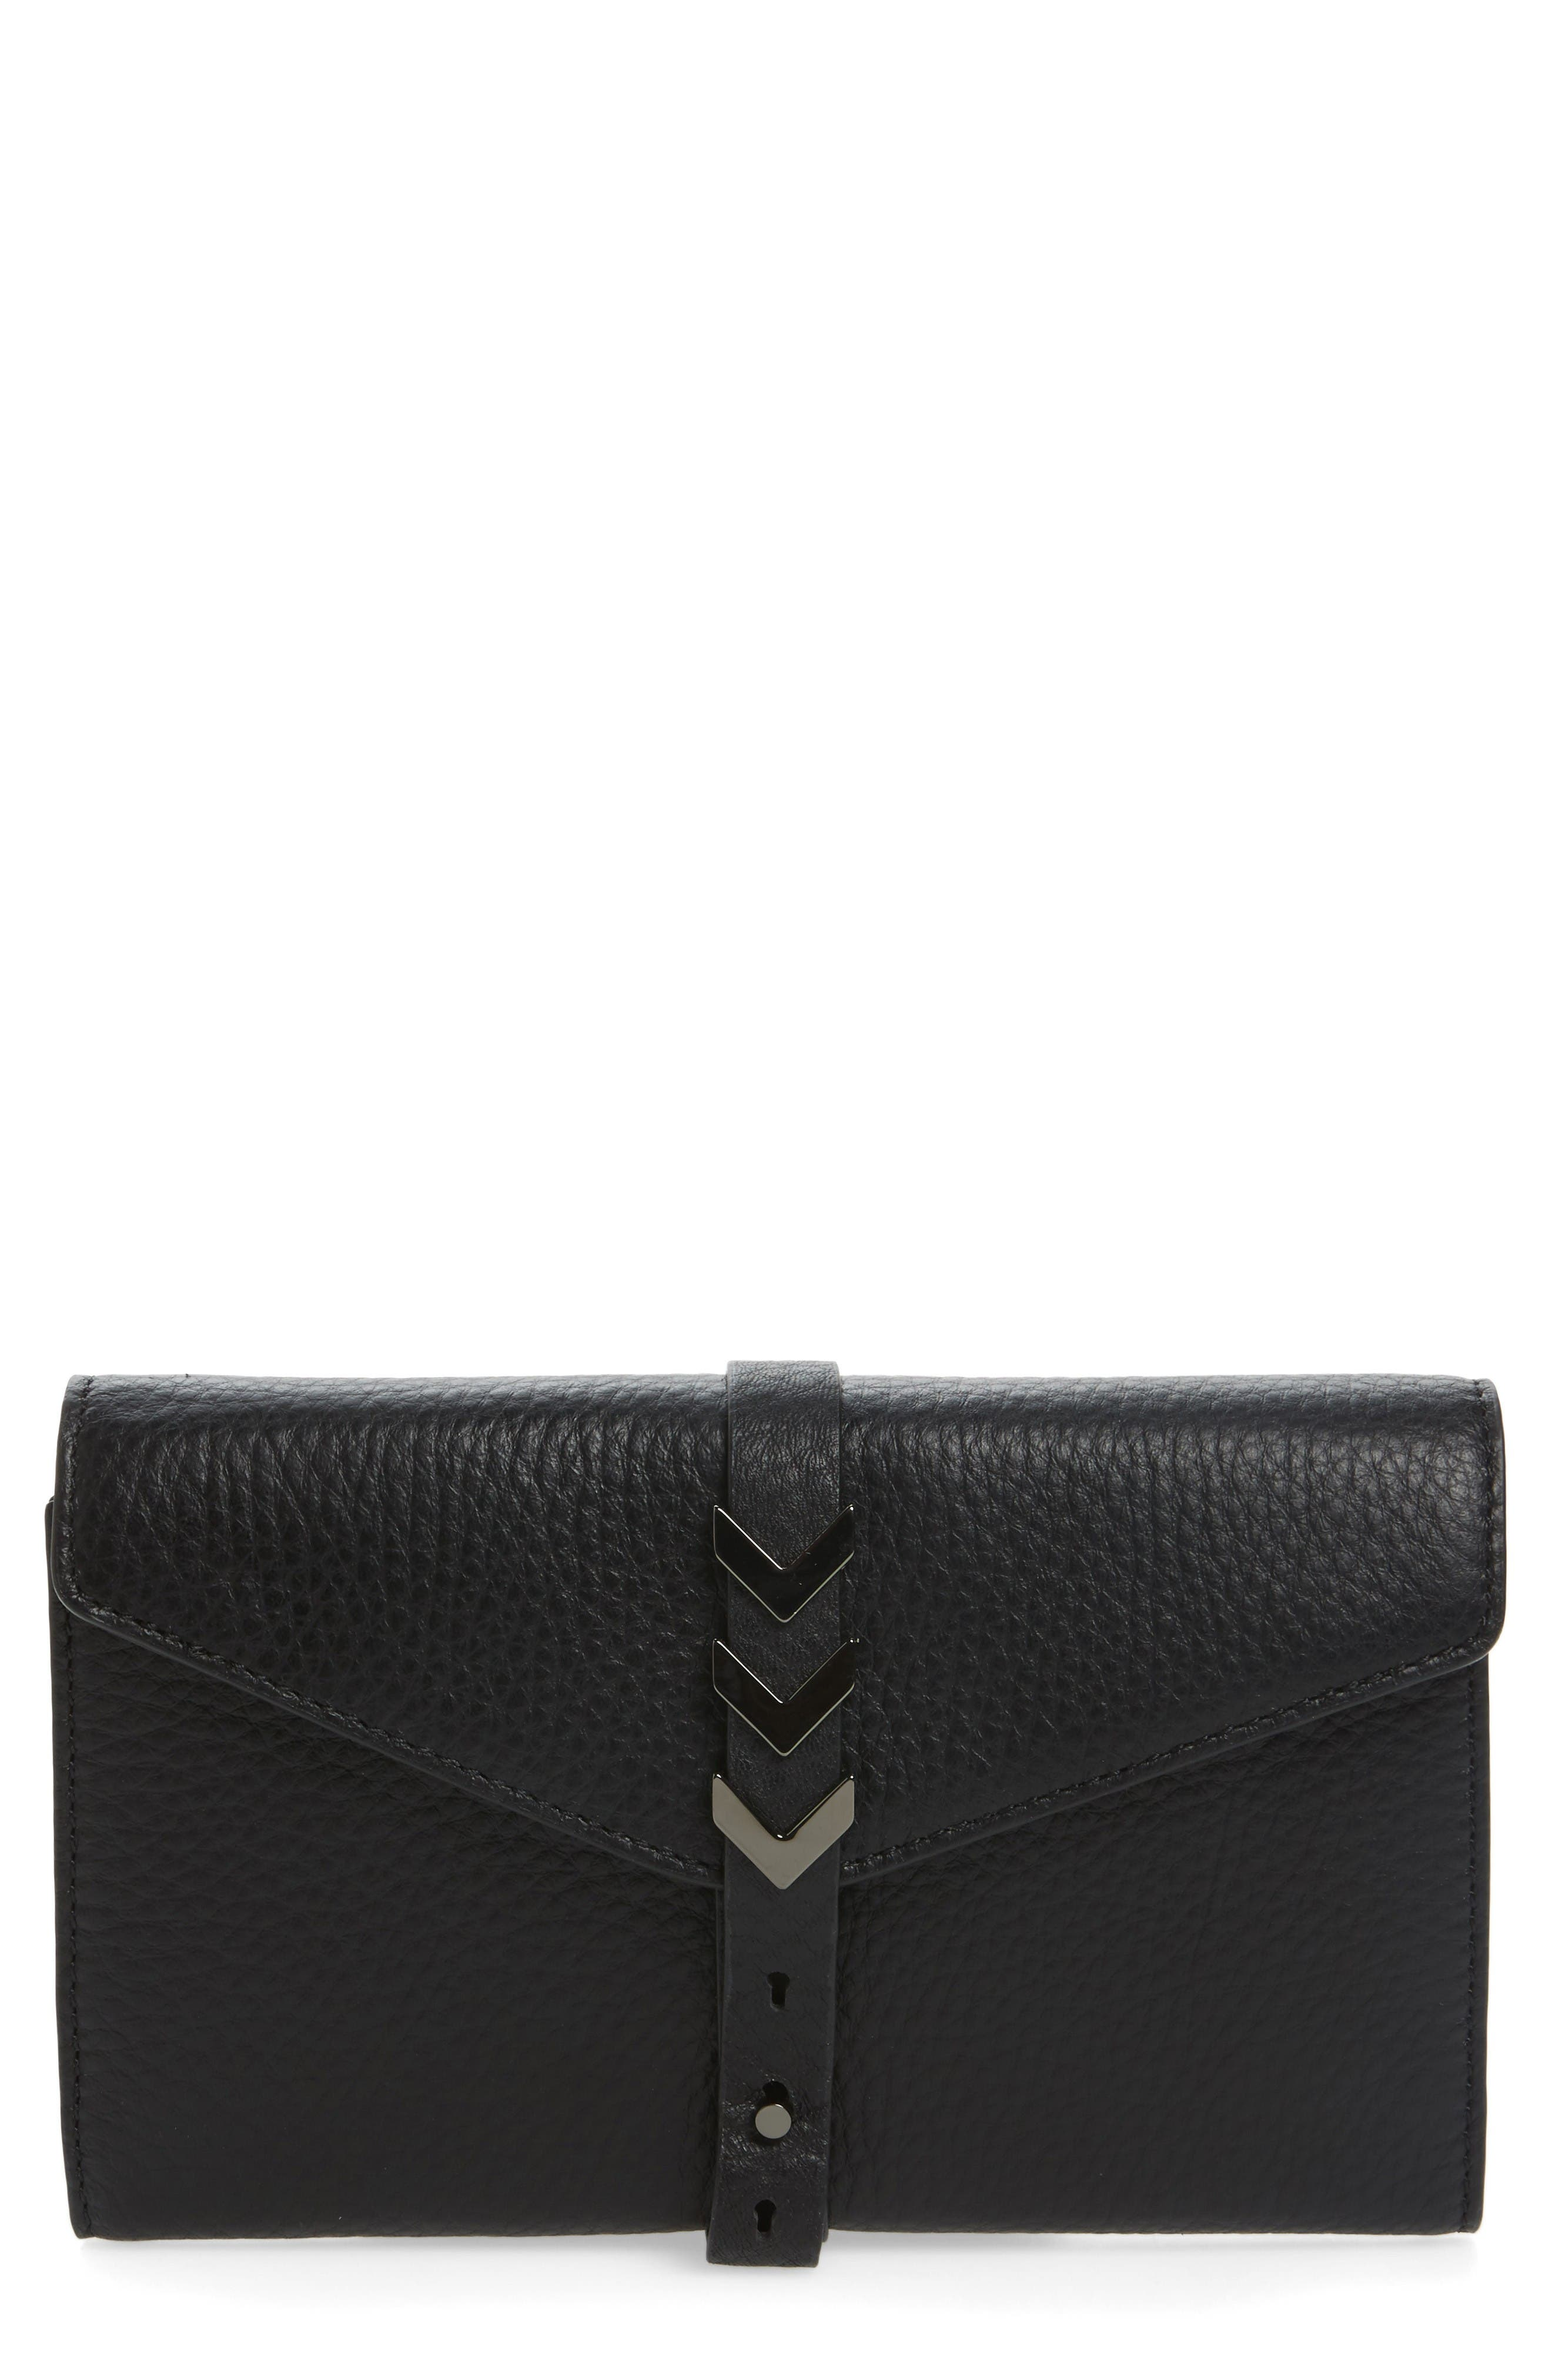 Main Image - Mackage Atlas Leather Envelope Wallet